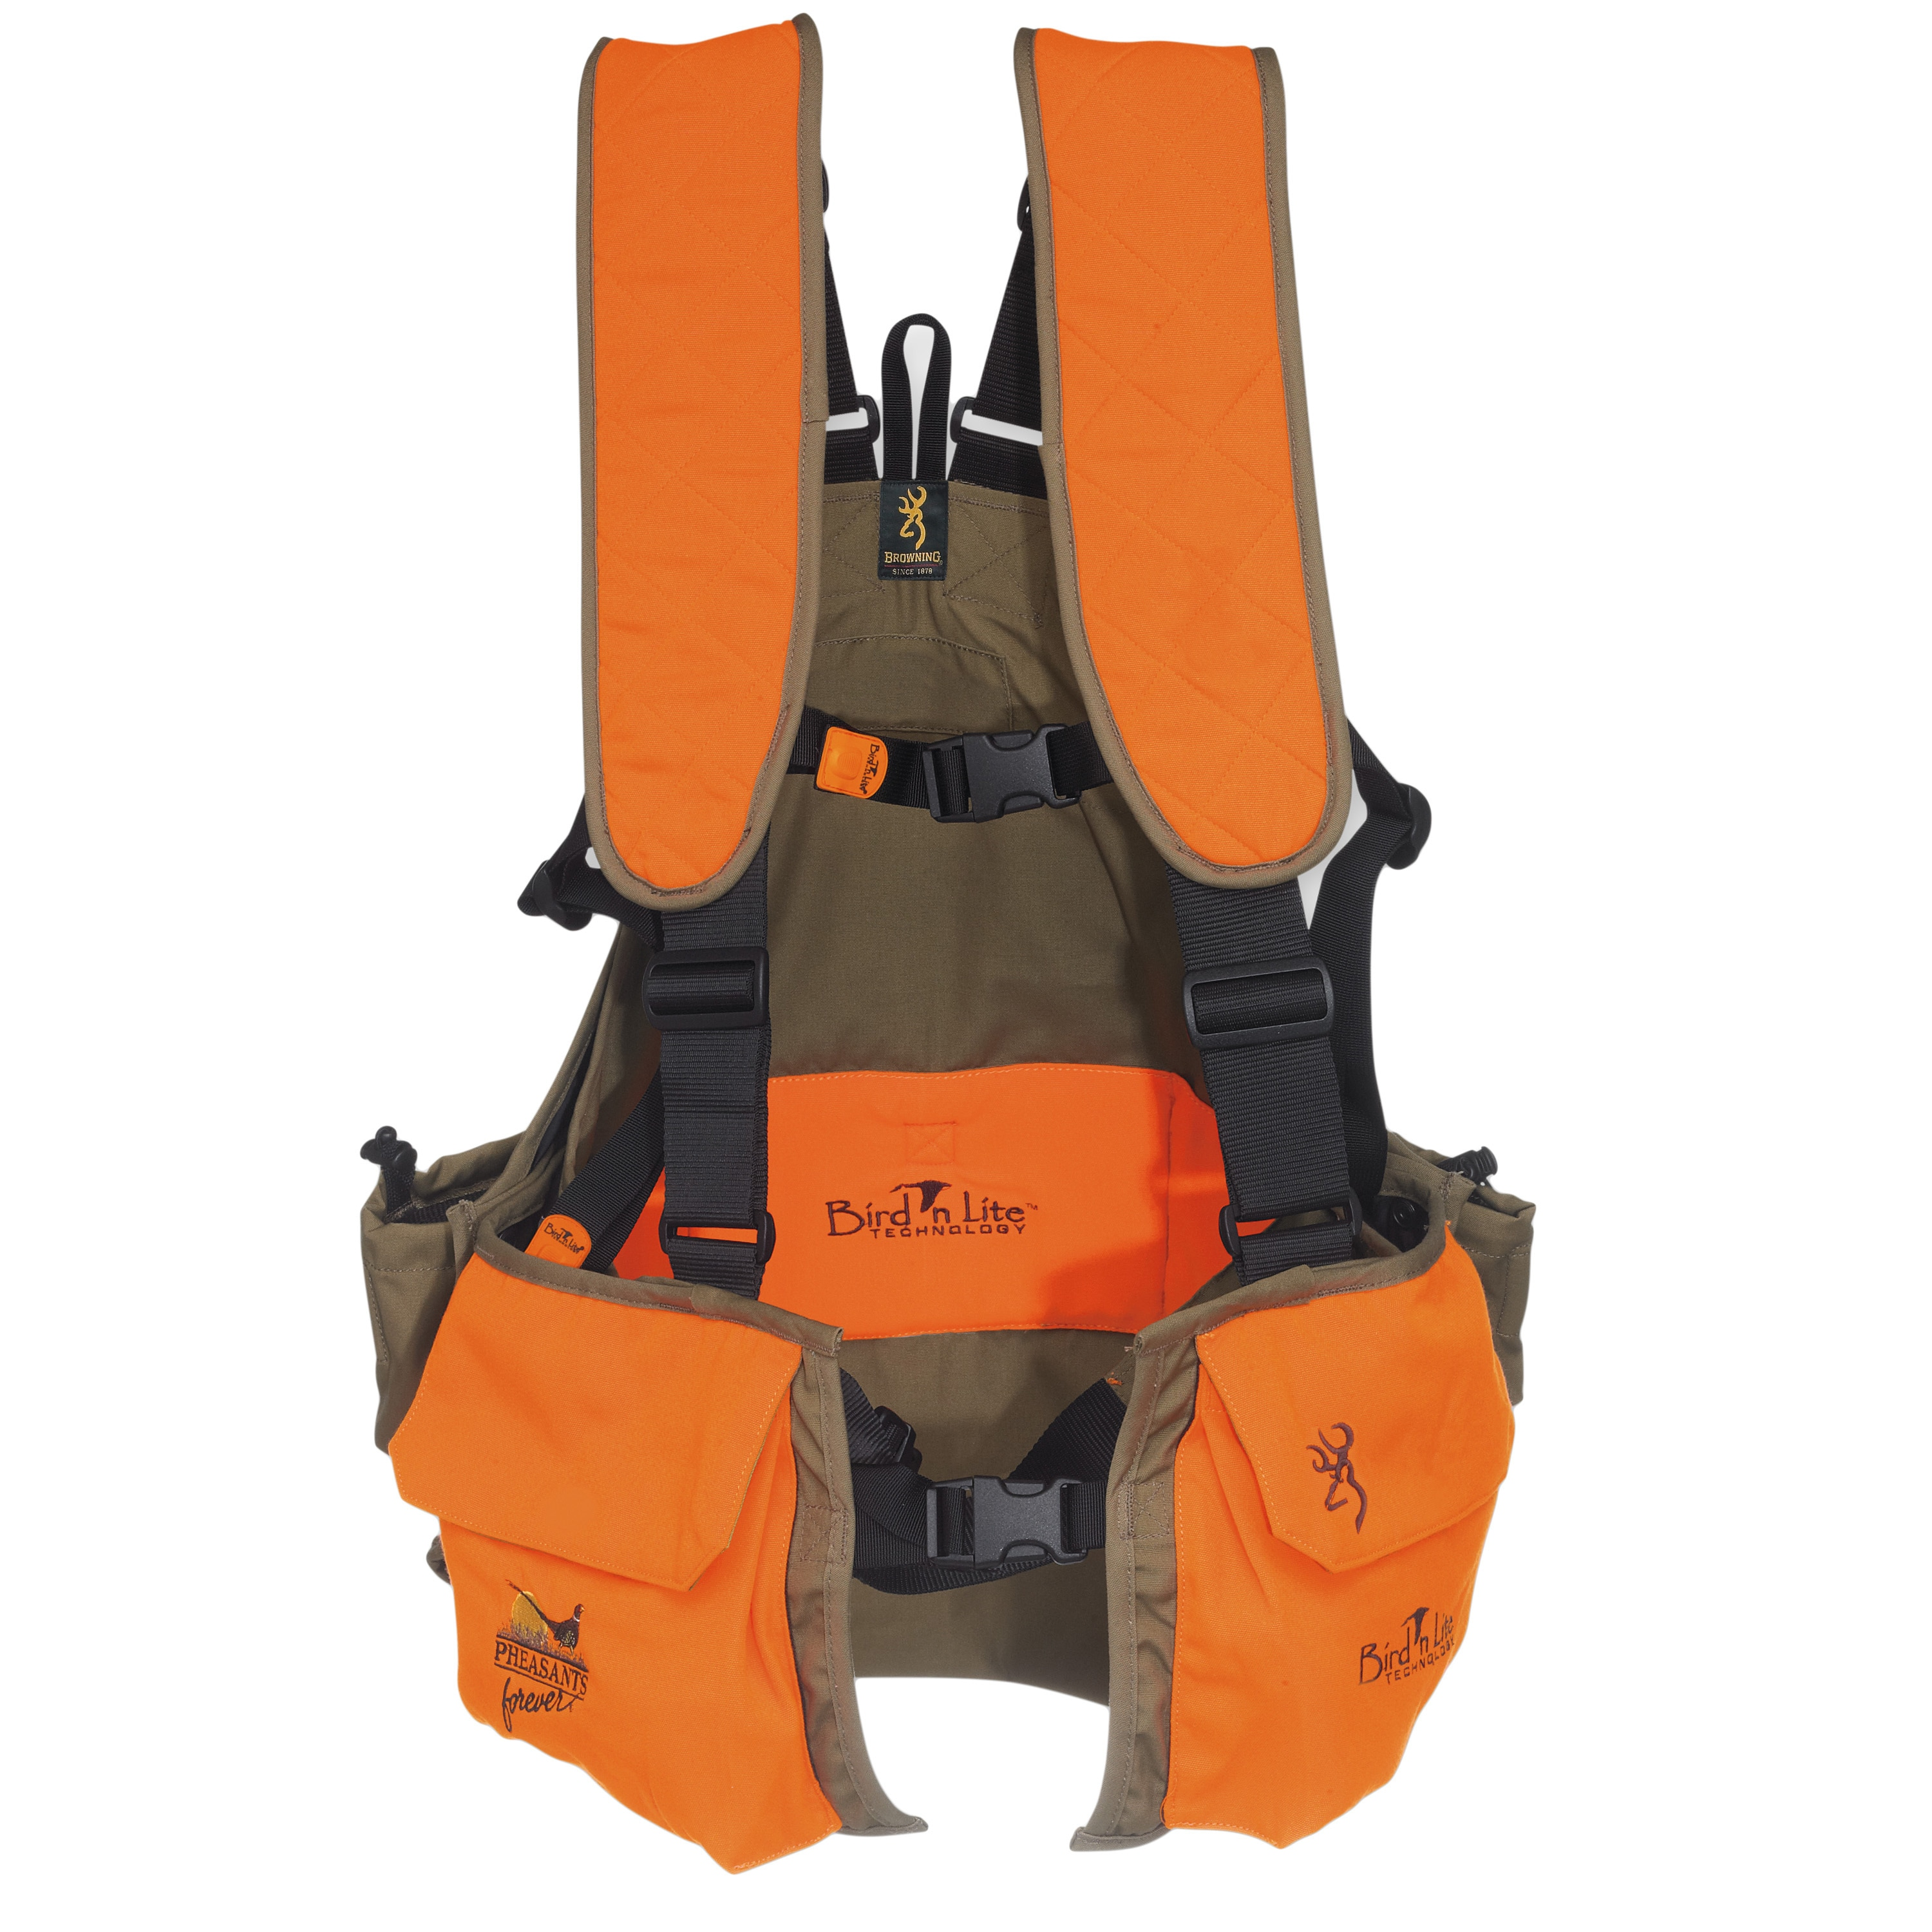 b6a2e8178ada0 Shop Browning Browning Bird'n Lite Pheasants Forever Khaki/Blaze Strap Vest  - Free Shipping Today - Overstock - 13870619